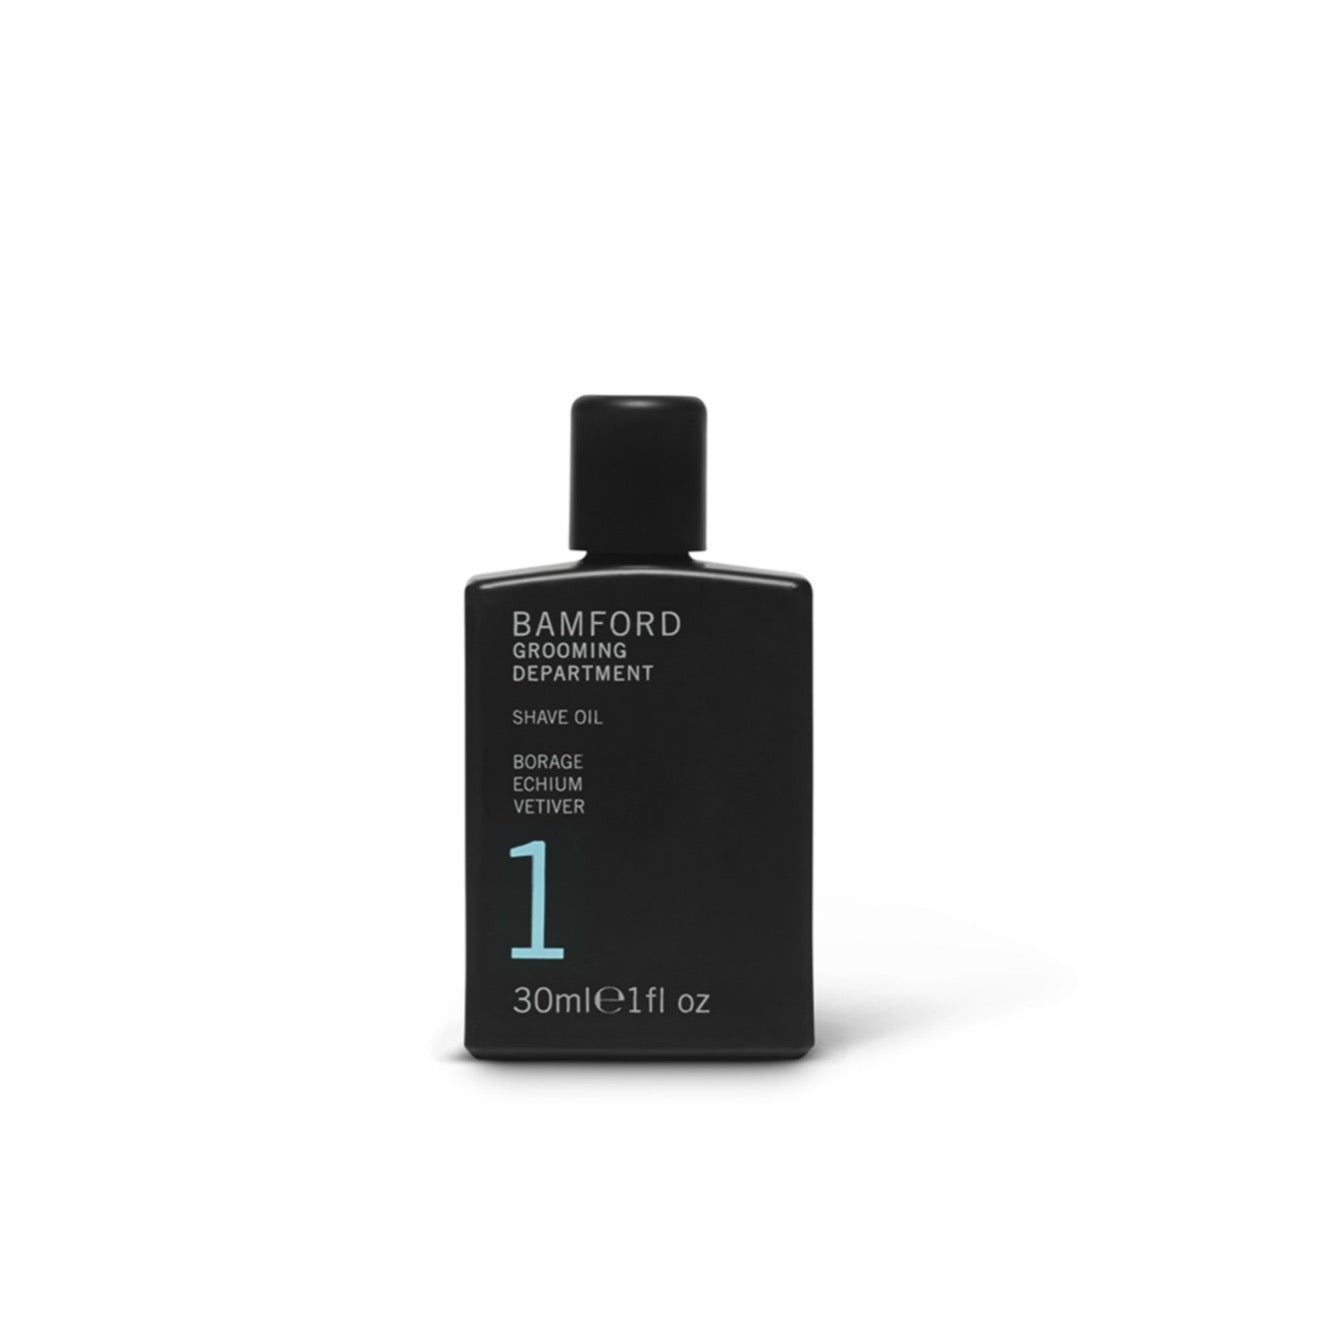 A blend of antioxidant and omega-rich blackcurrant, Echium and borage oils provide an effortless shave. Skin is left feeling protected and intensely hydrated. Fragrance notes - A rare blend of fresh Vetiver, Bergamot and Cassis tempered with an elegant combination of wood smoke, warming dark Amber, Agarwood and leather.